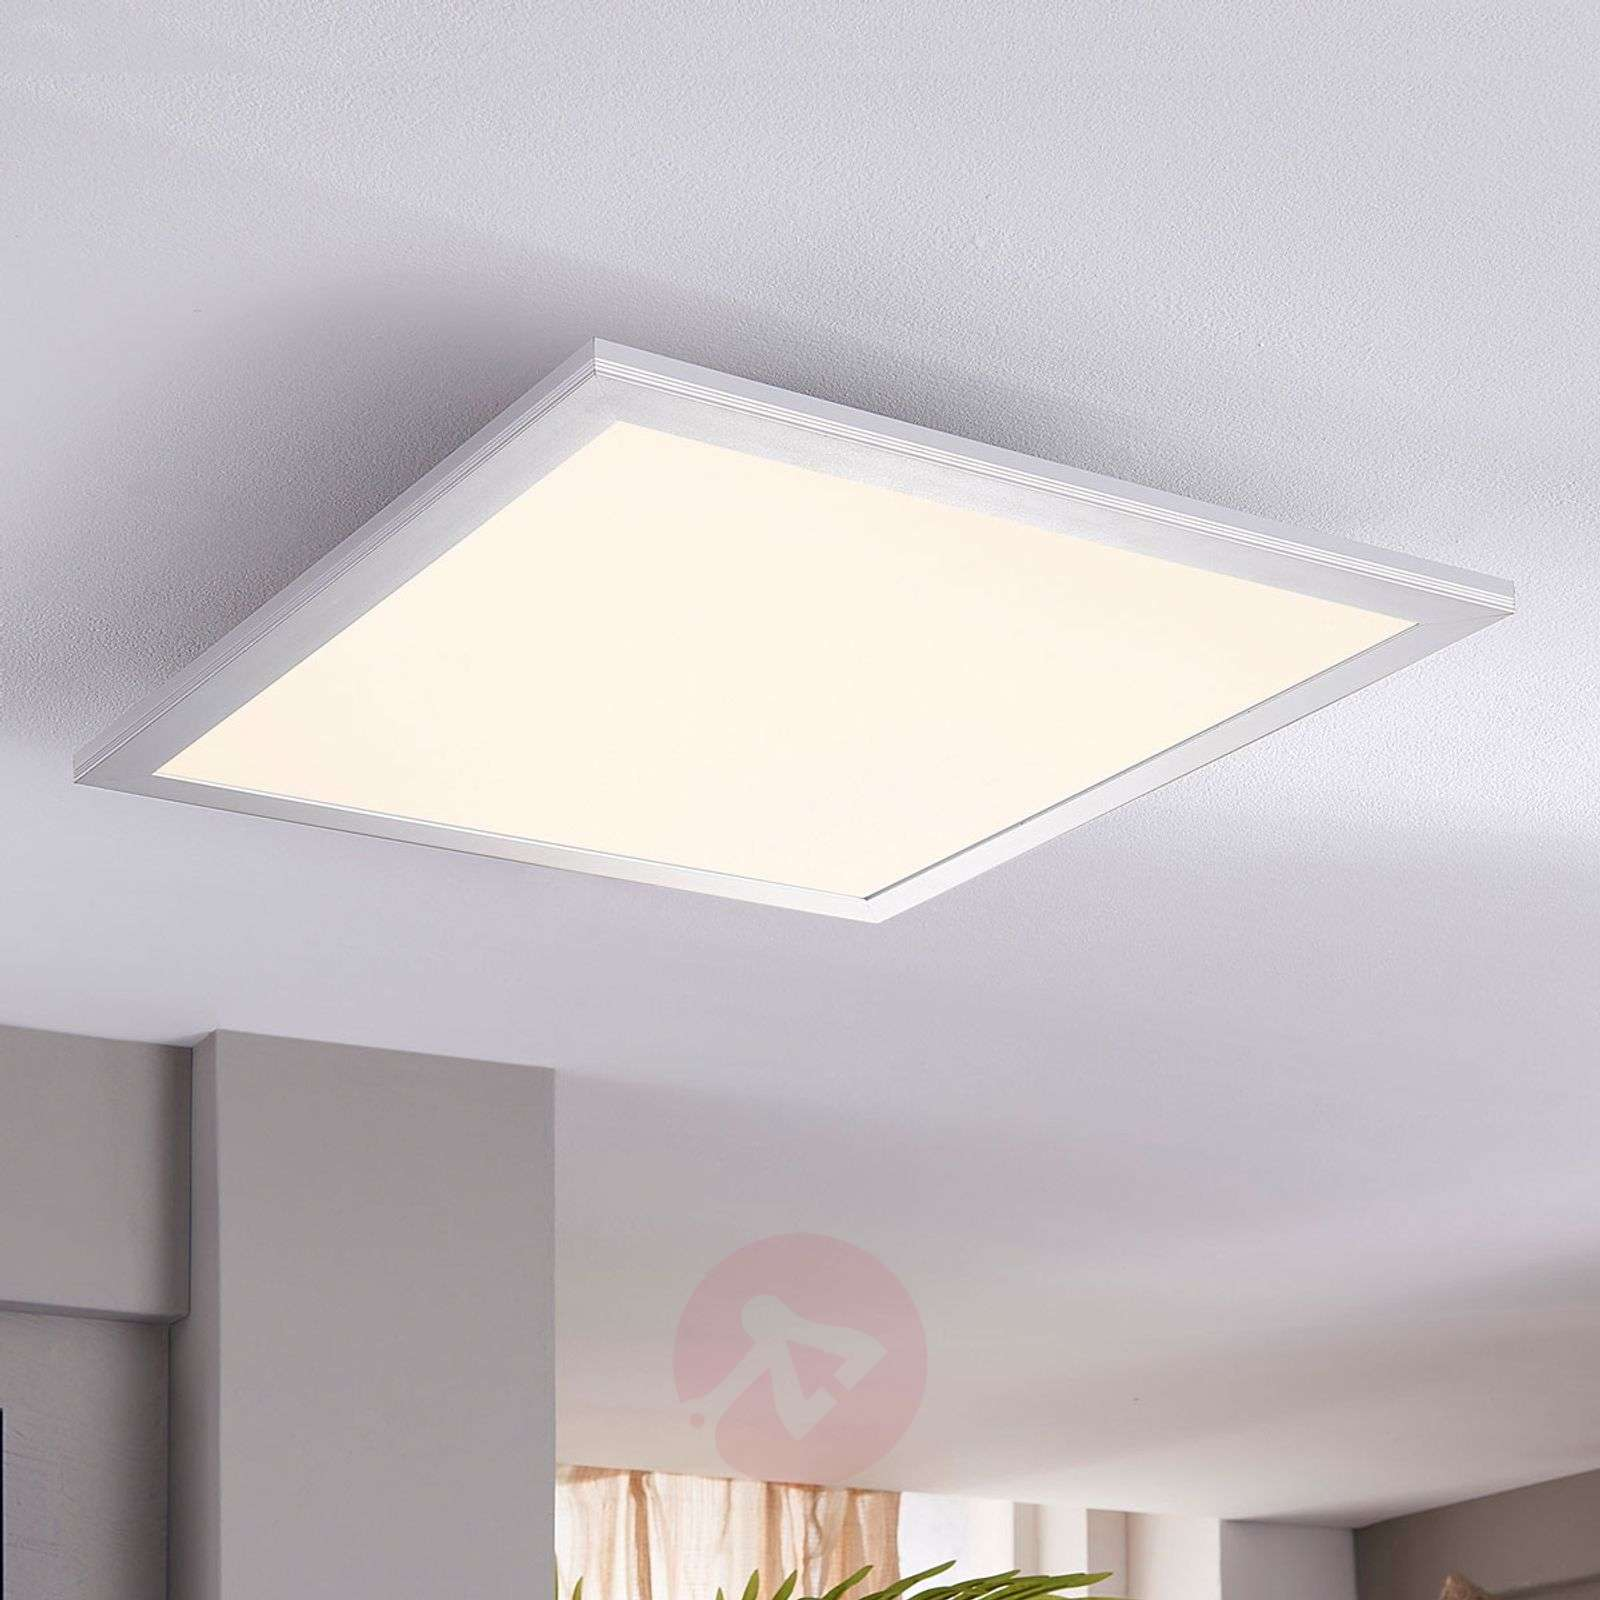 Plafoniera LED quadrata Livel, 28 W-9956001-01